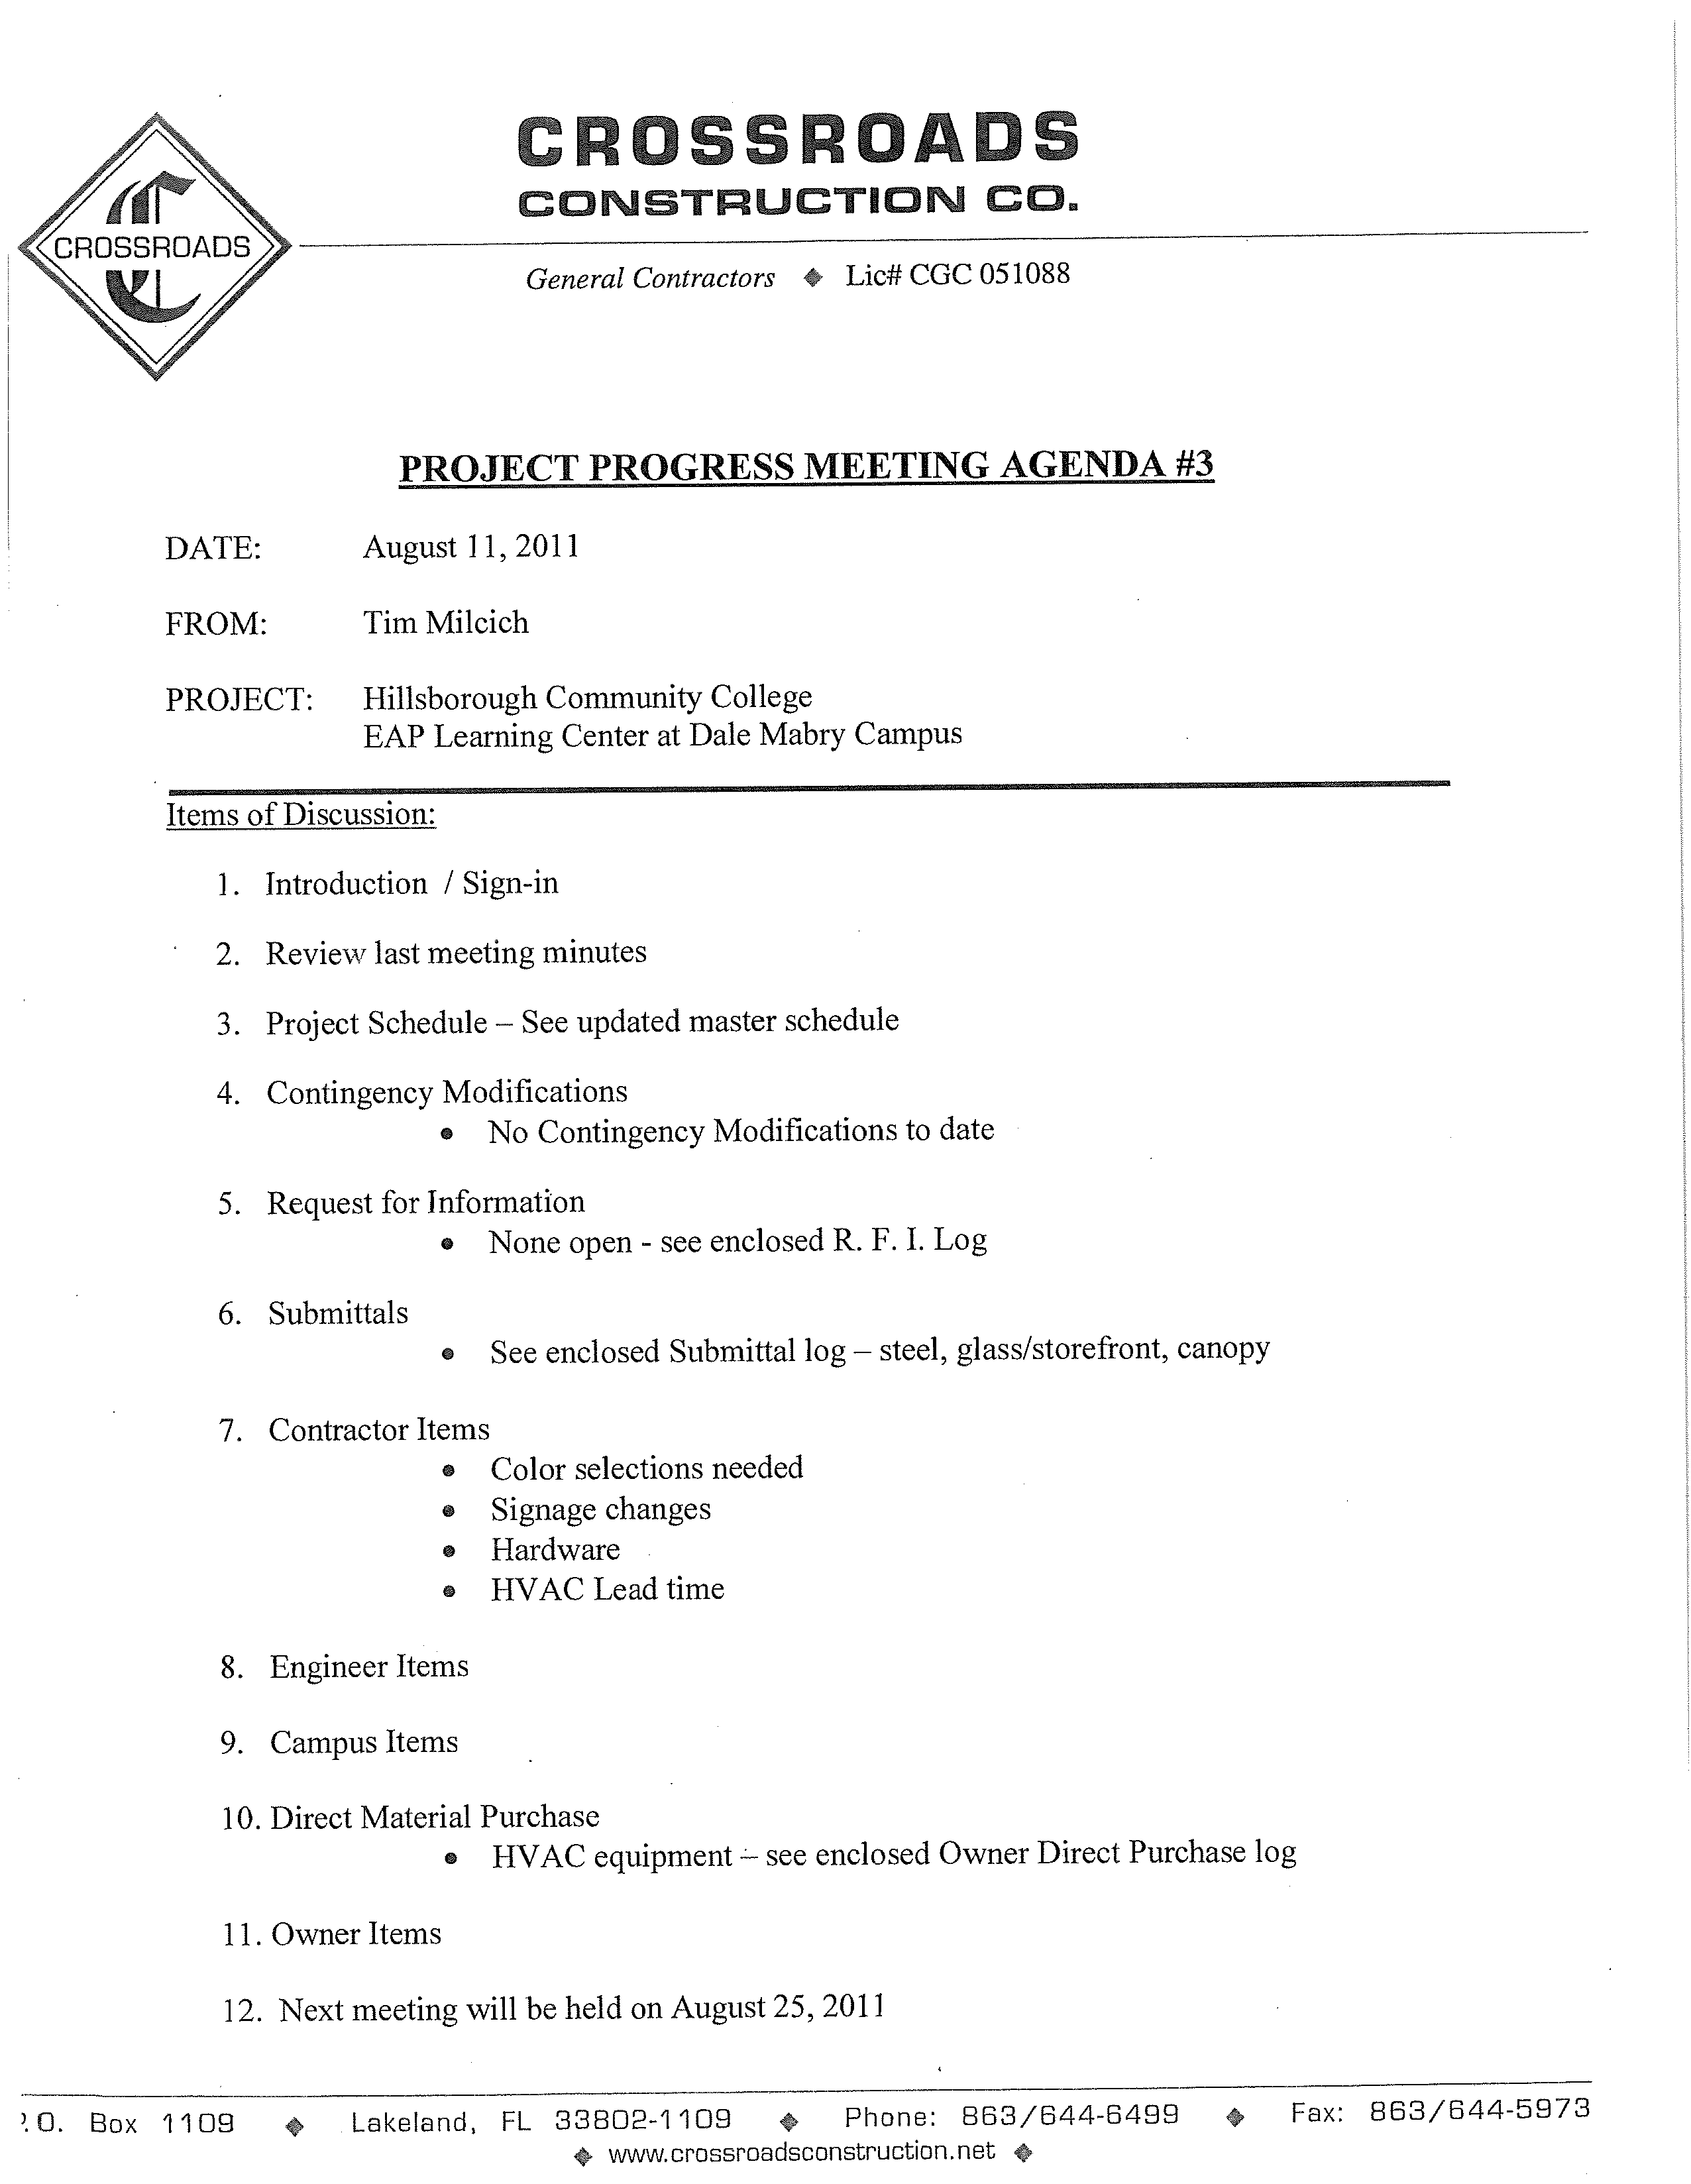 Free Construction Project Progress Meeting Agenda Template